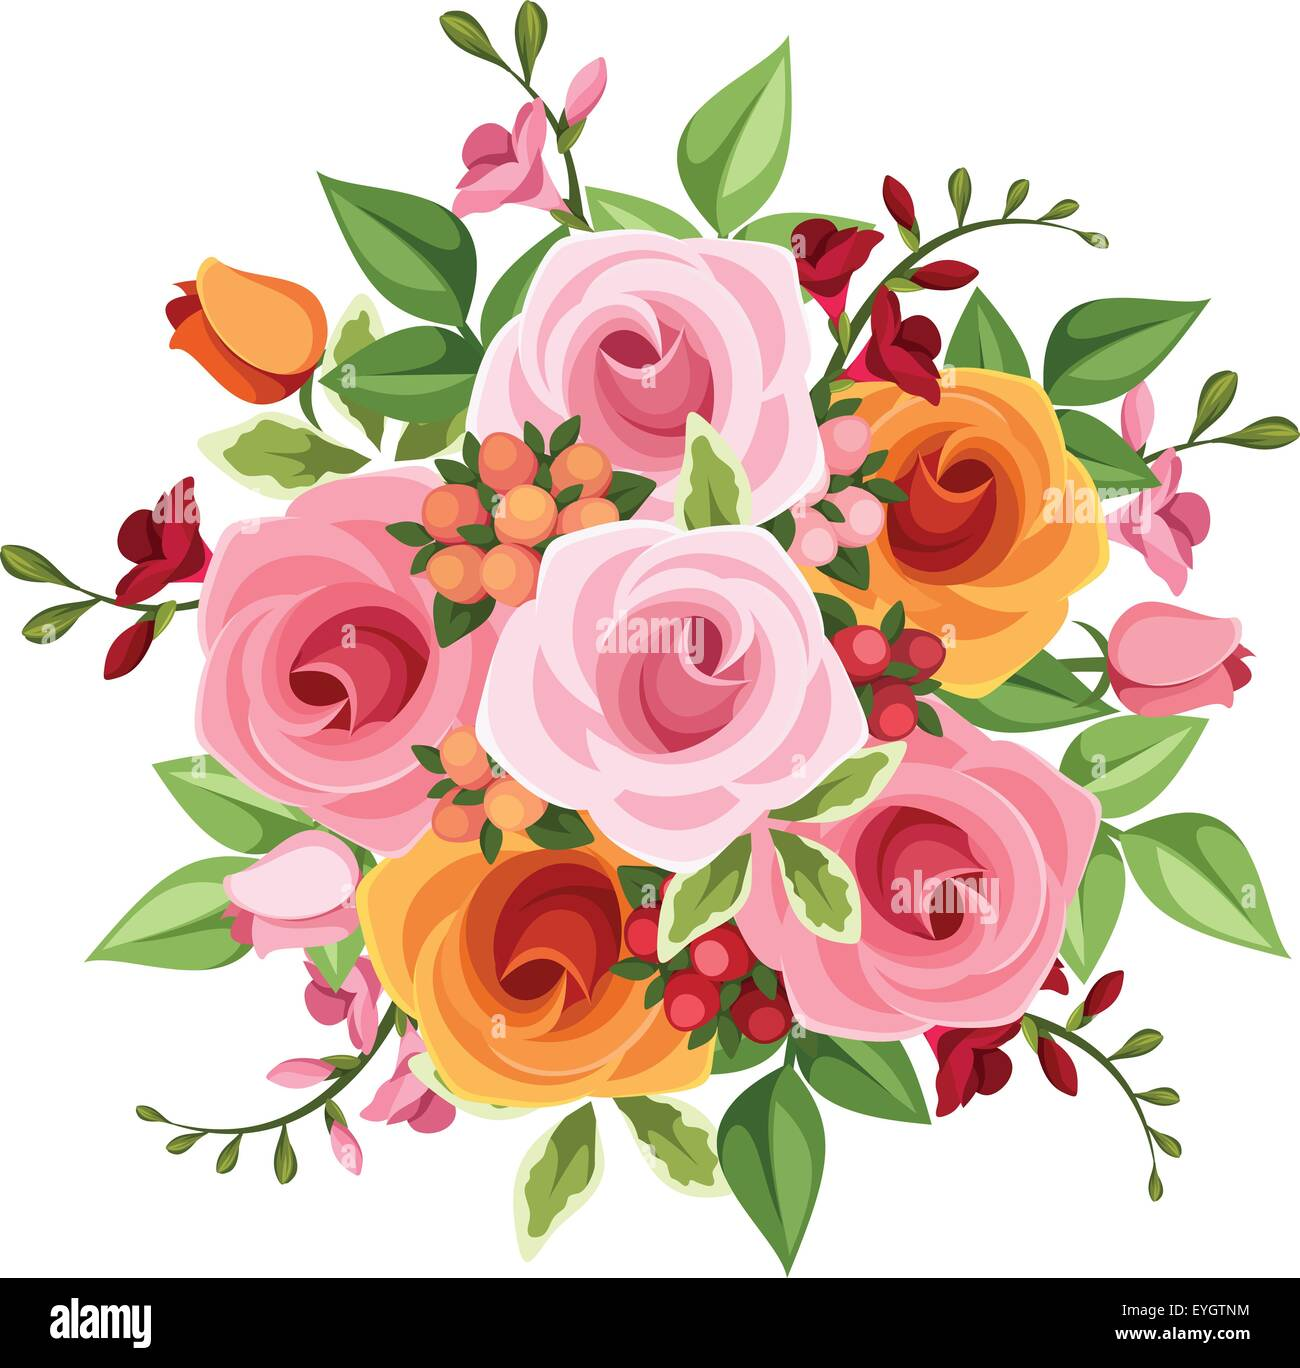 Bouquet of roses and freesia flowers vector illustration stock bouquet of roses and freesia flowers vector illustration izmirmasajfo Gallery